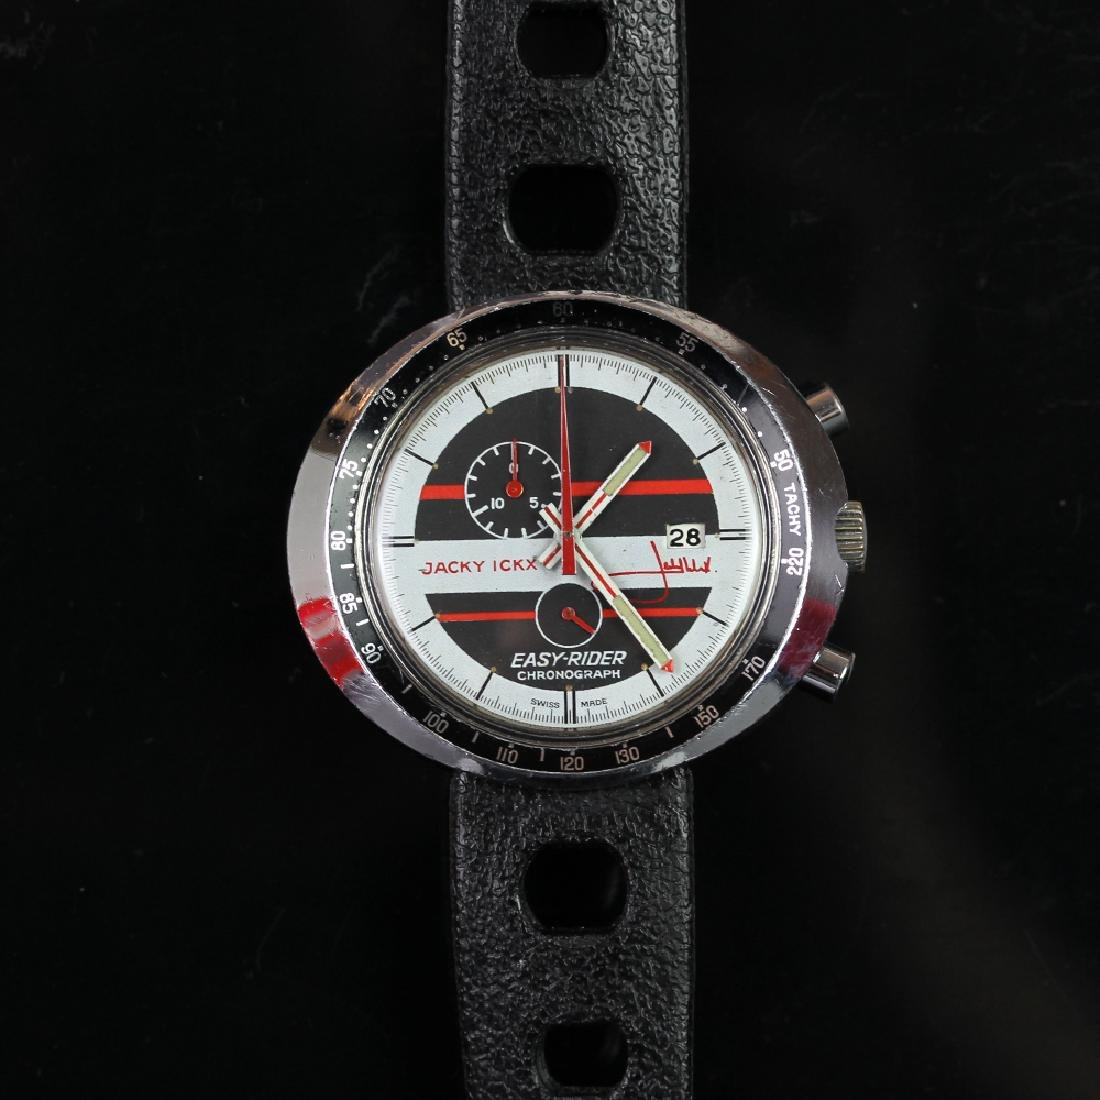 *TO BE SOLD WITHOUT RESERVE* RARE GENTLEMEN'S HEUER